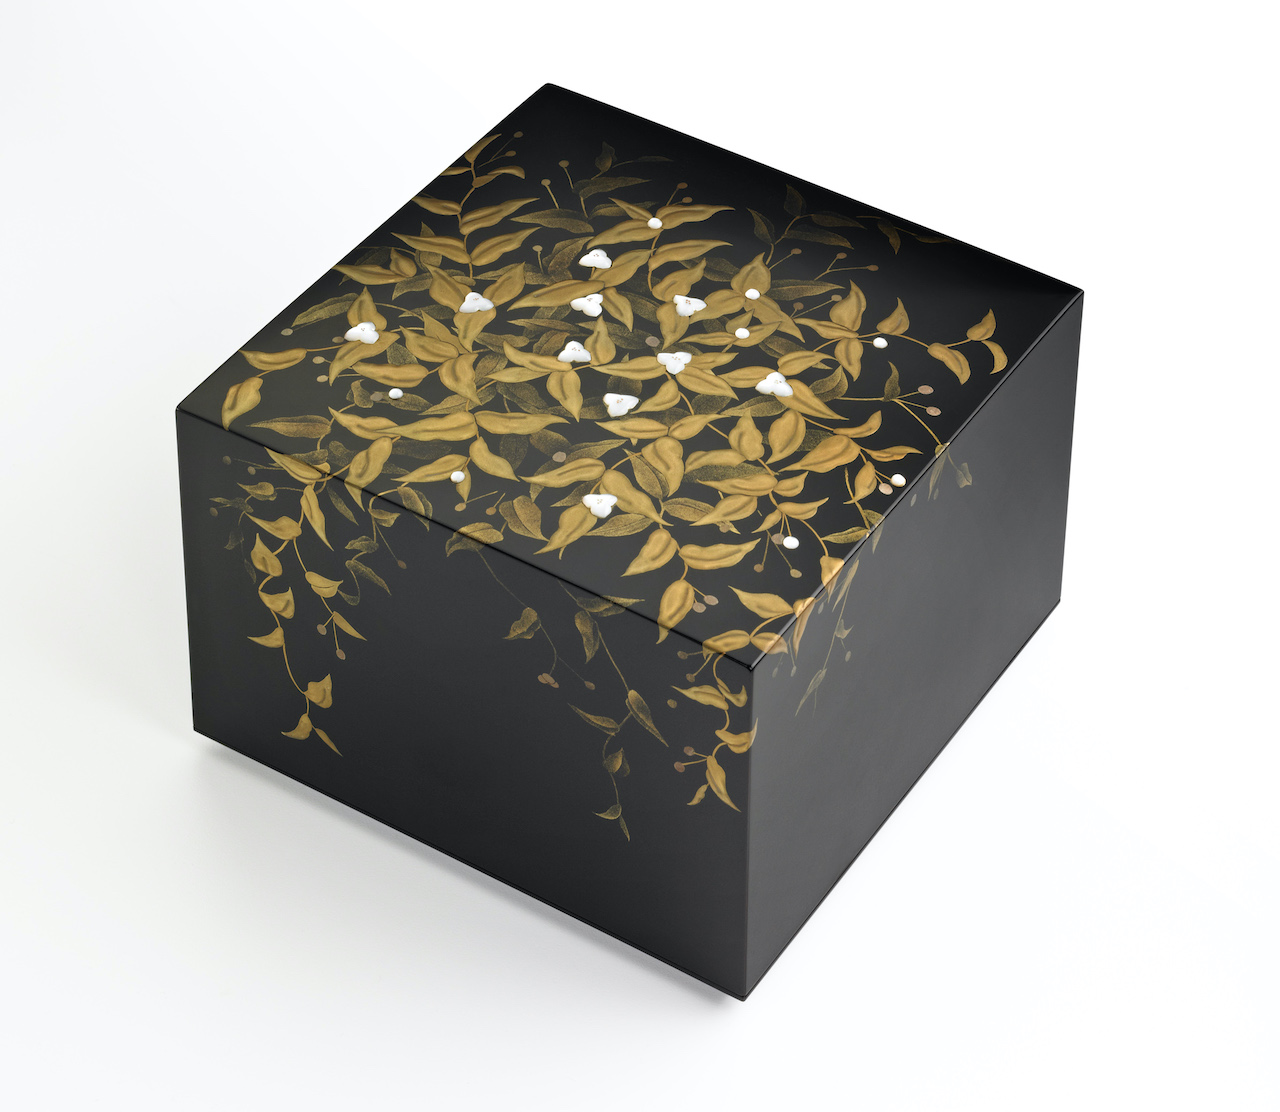 ORNAMENTAL BOX